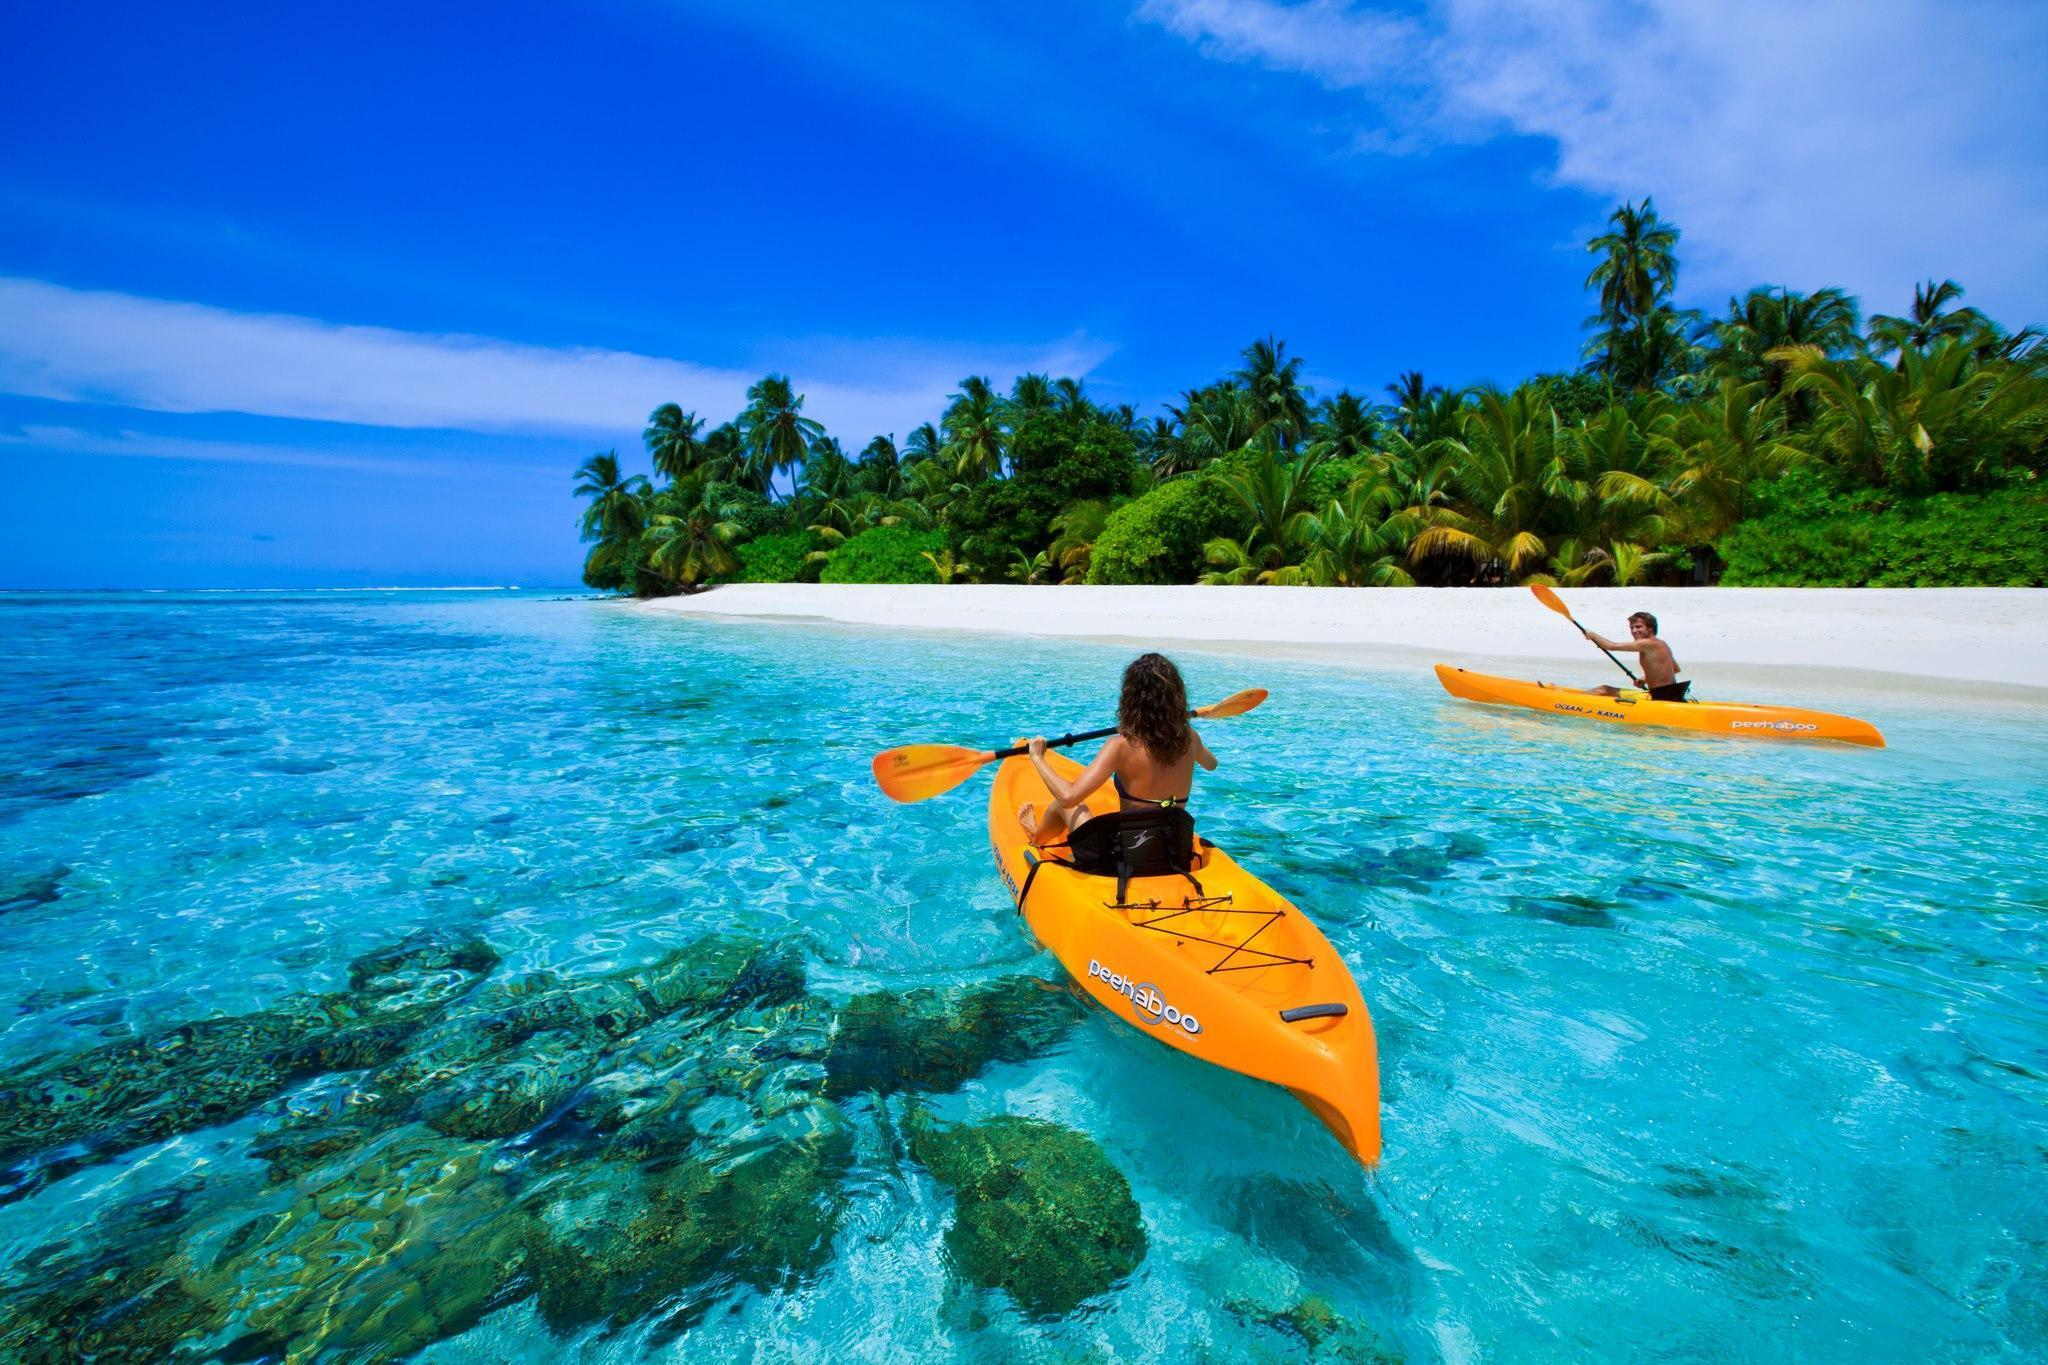 Canoe On Blue Lagoon In Maldives HD desktop wallpapers : Widescreen